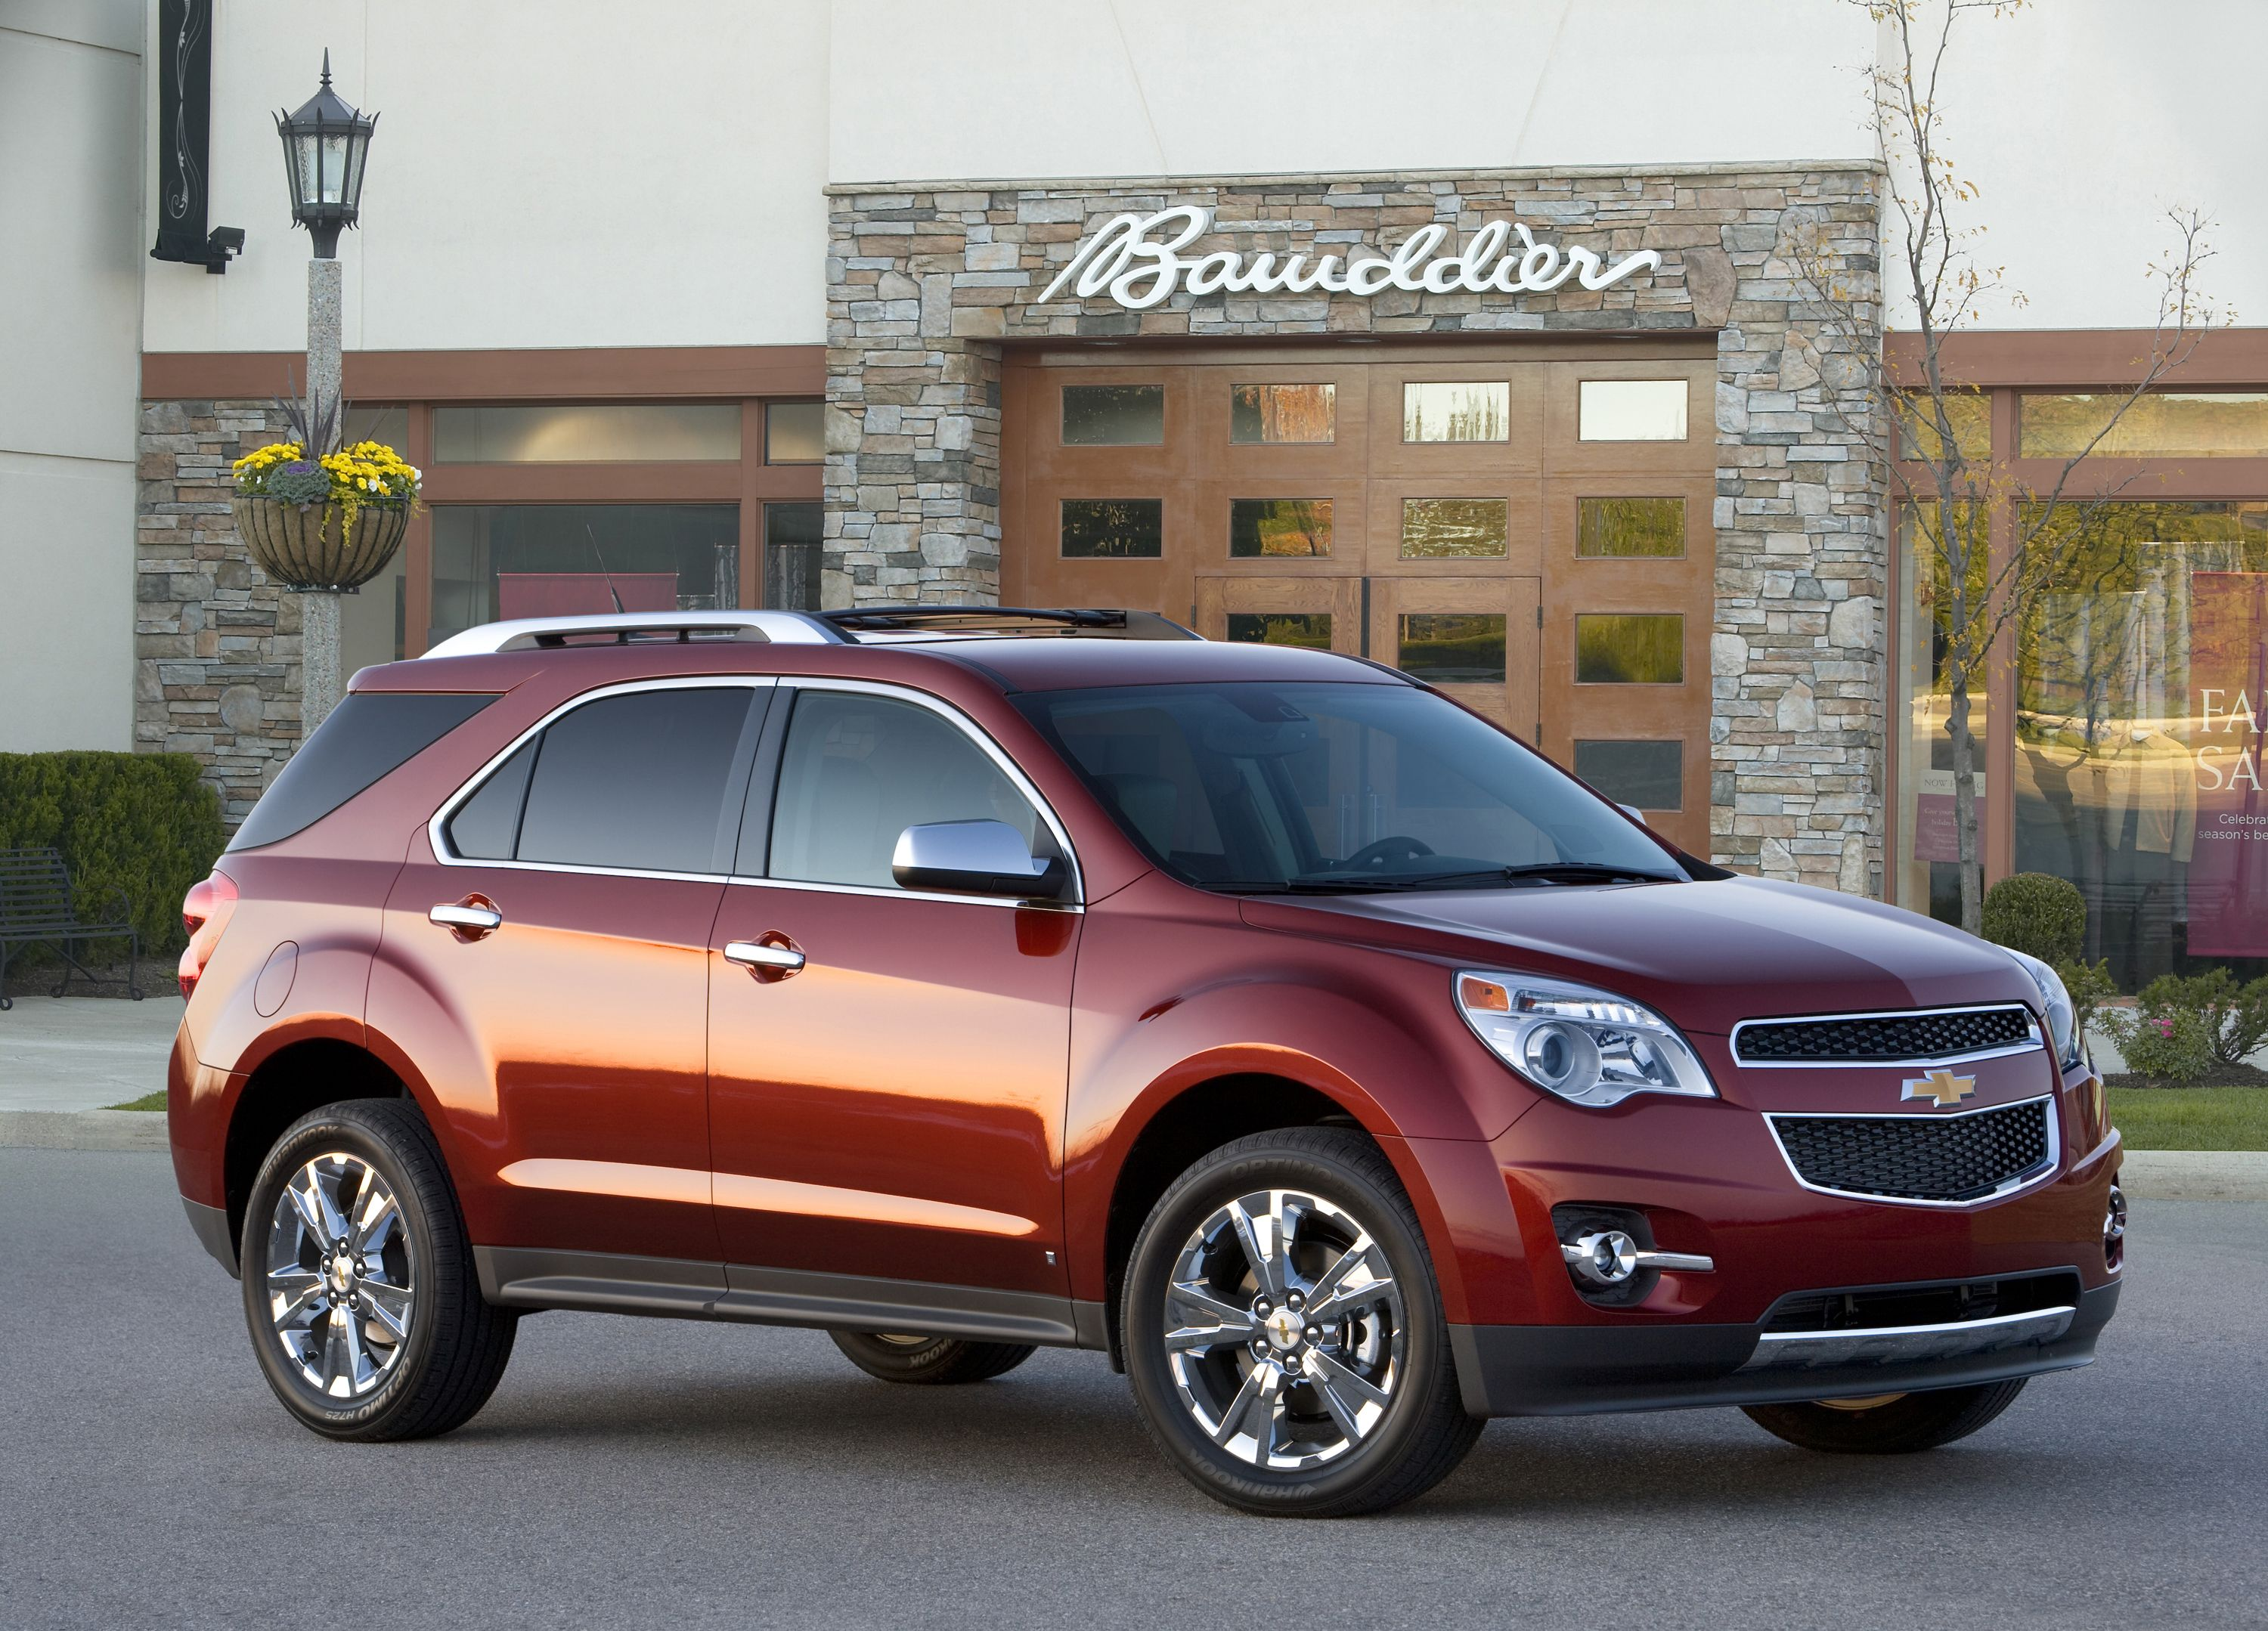 I Love Crossover Vehicles Chevrolet Equinox Chevy Equinox